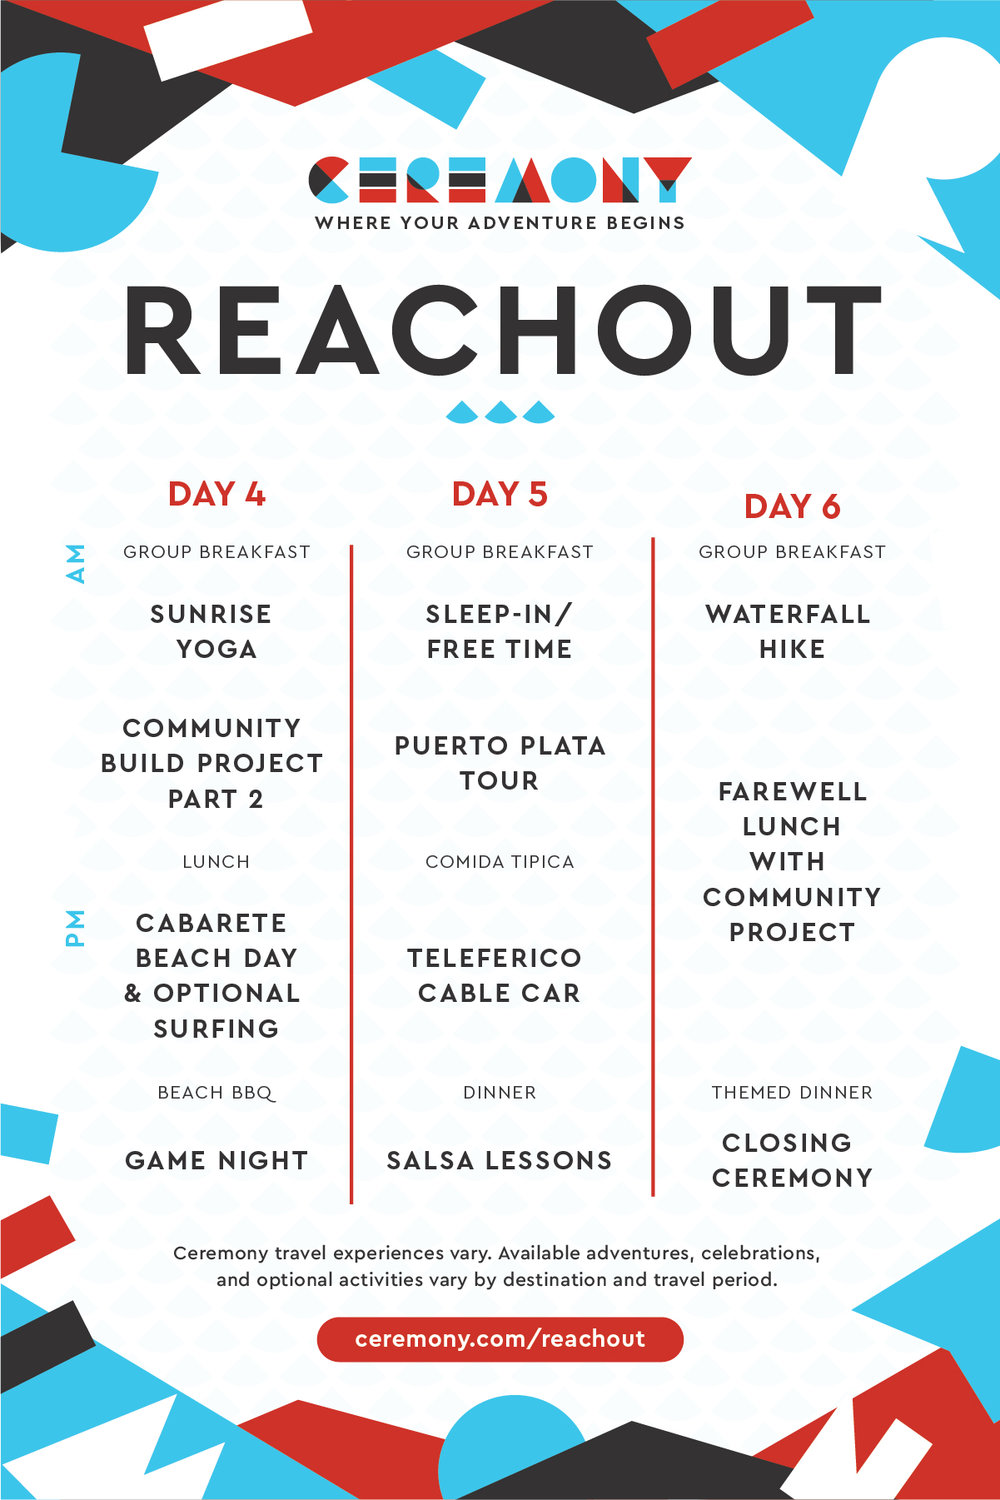 Ceremony-travel-itinerary-schedule-example-review-ReachOut.jpg